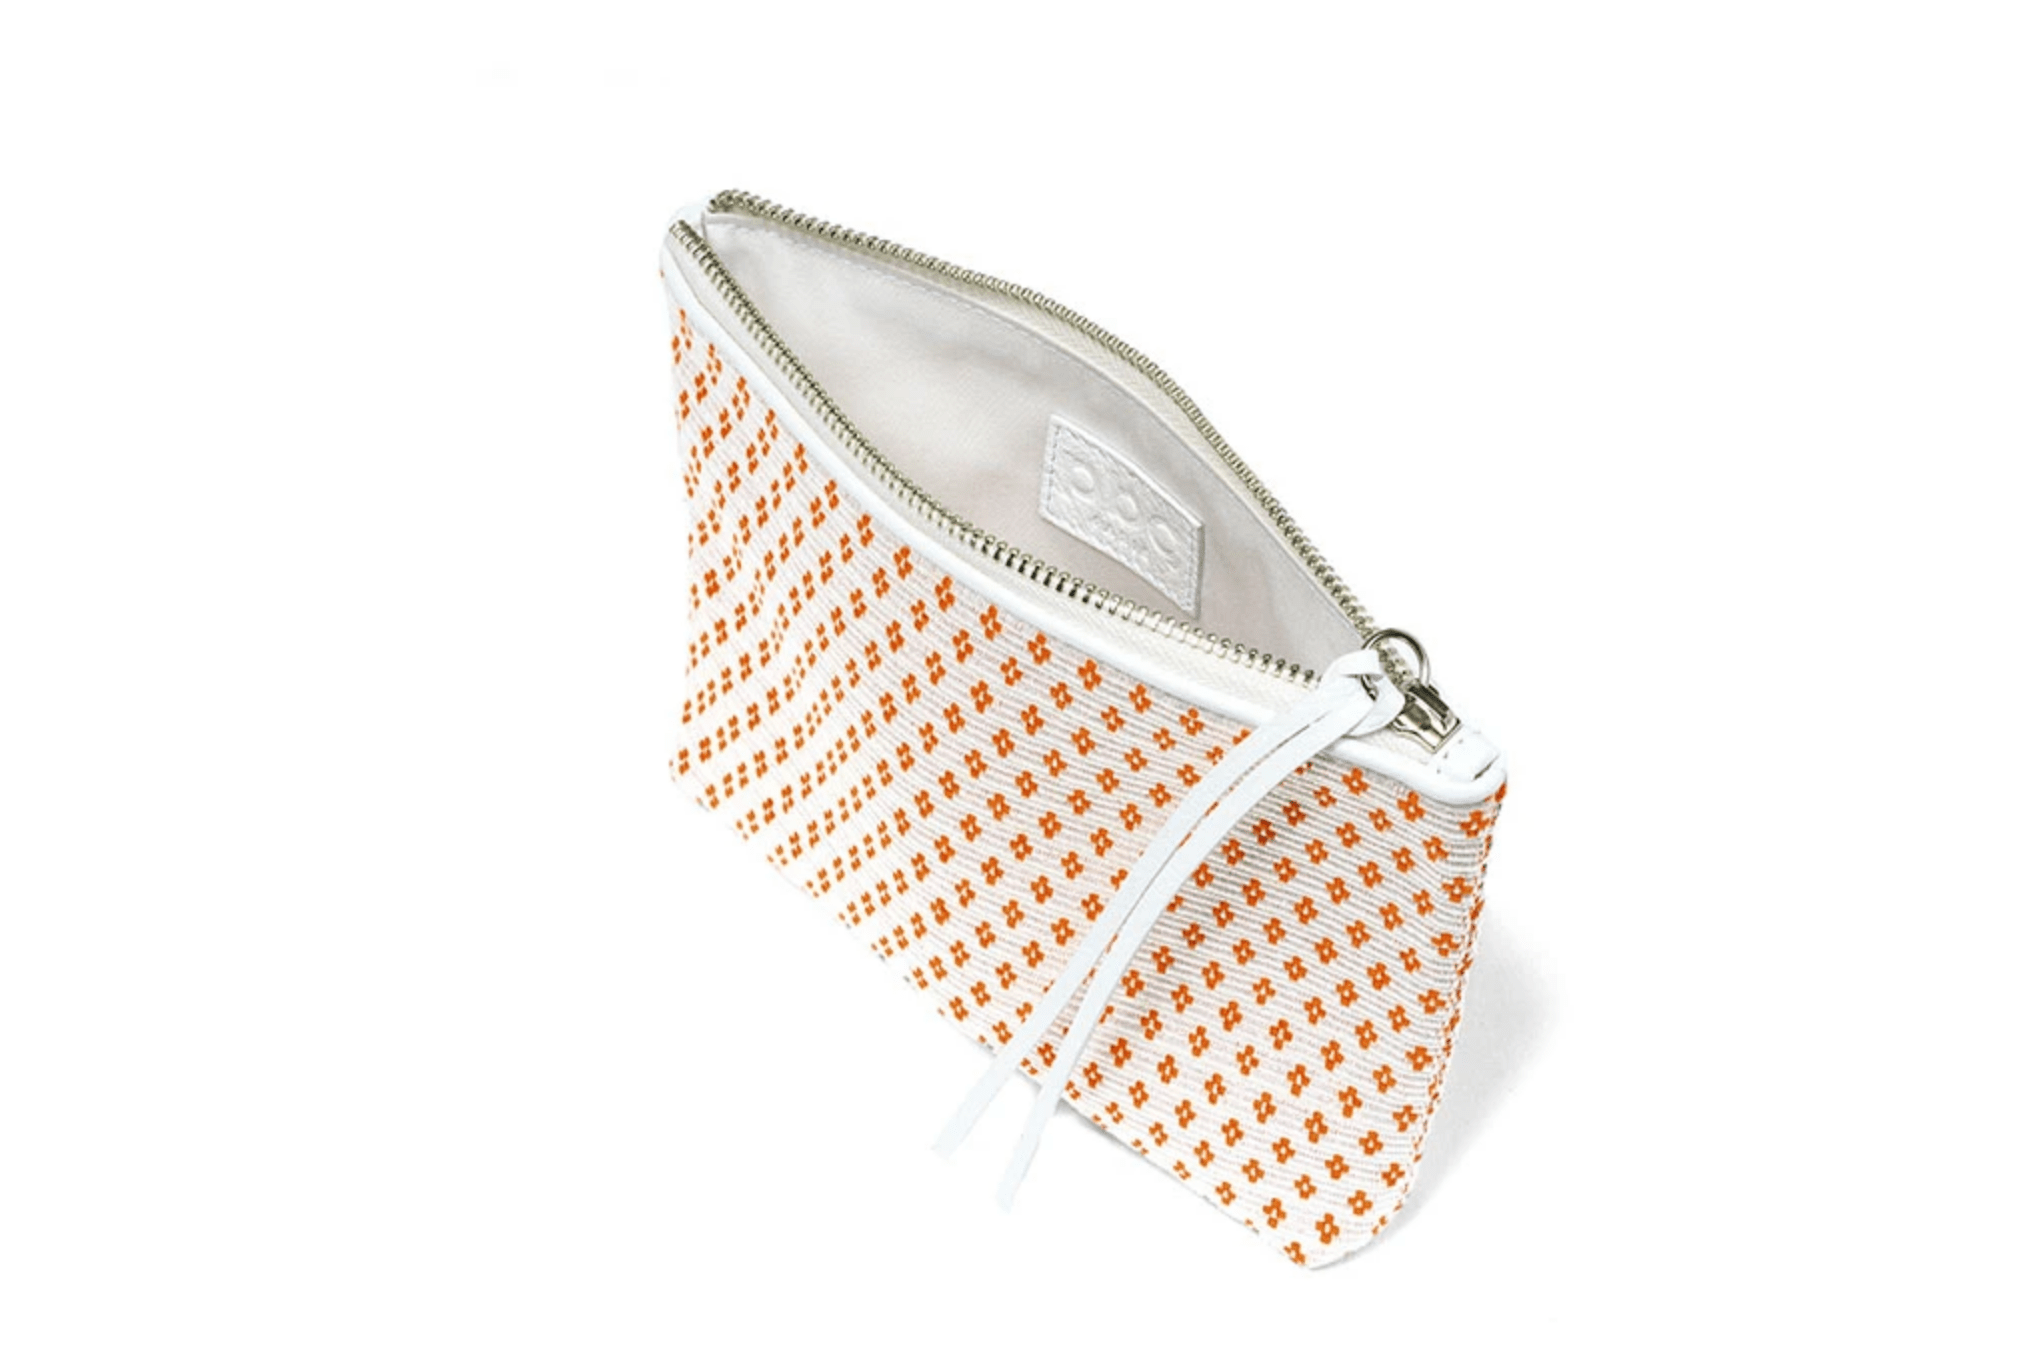 PBG PARIS-Bags of Hope zipper pouch